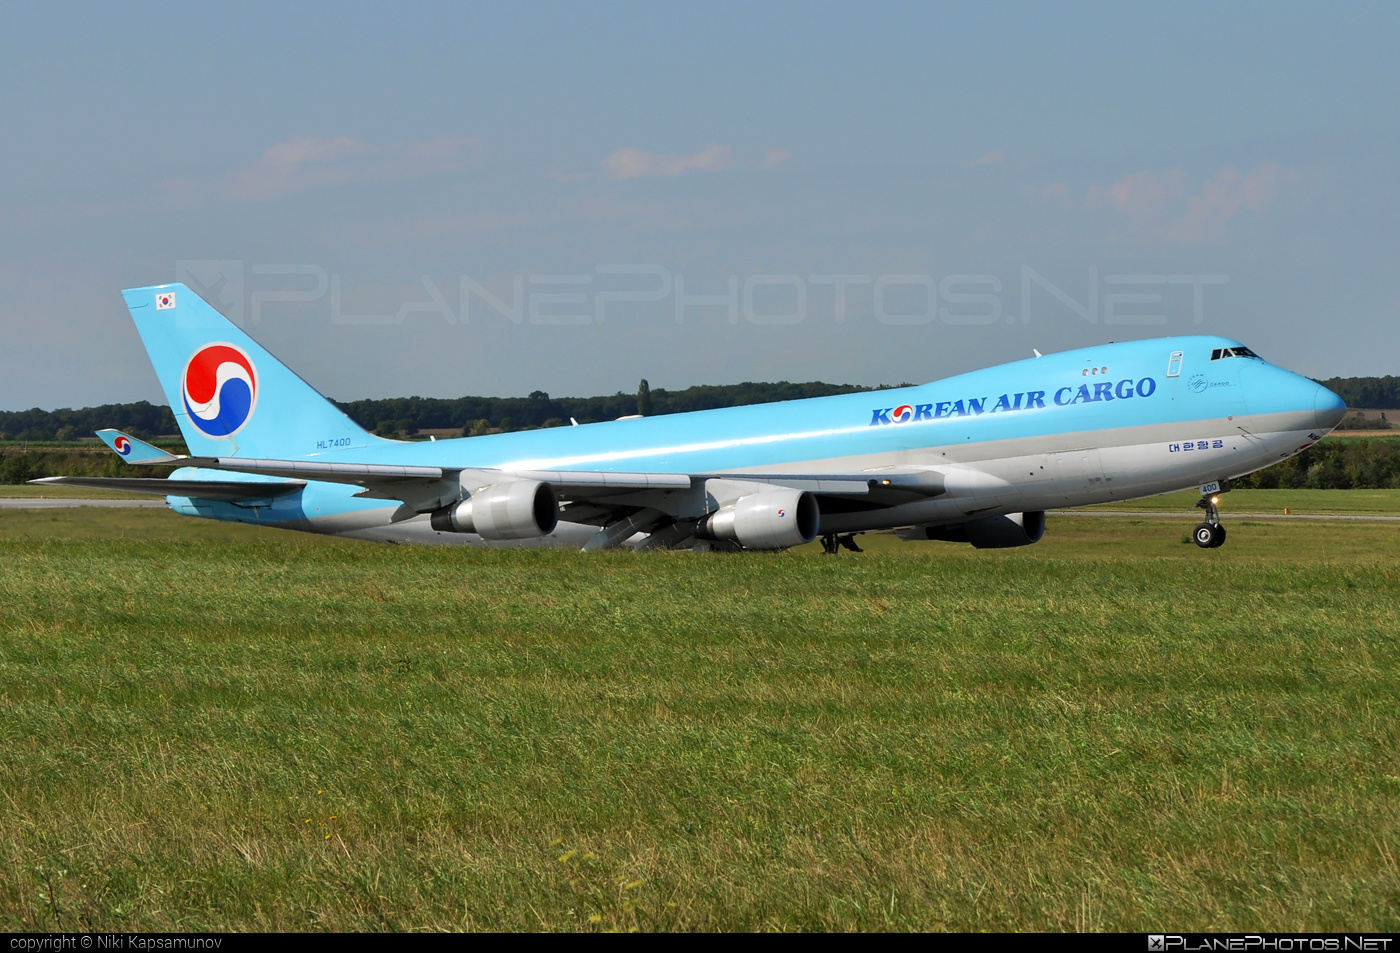 Boeing 747-400F - HL7400 operated by Korean Air Cargo #b747 #boeing #boeing747 #jumbo #koreanair #koreanaircargo